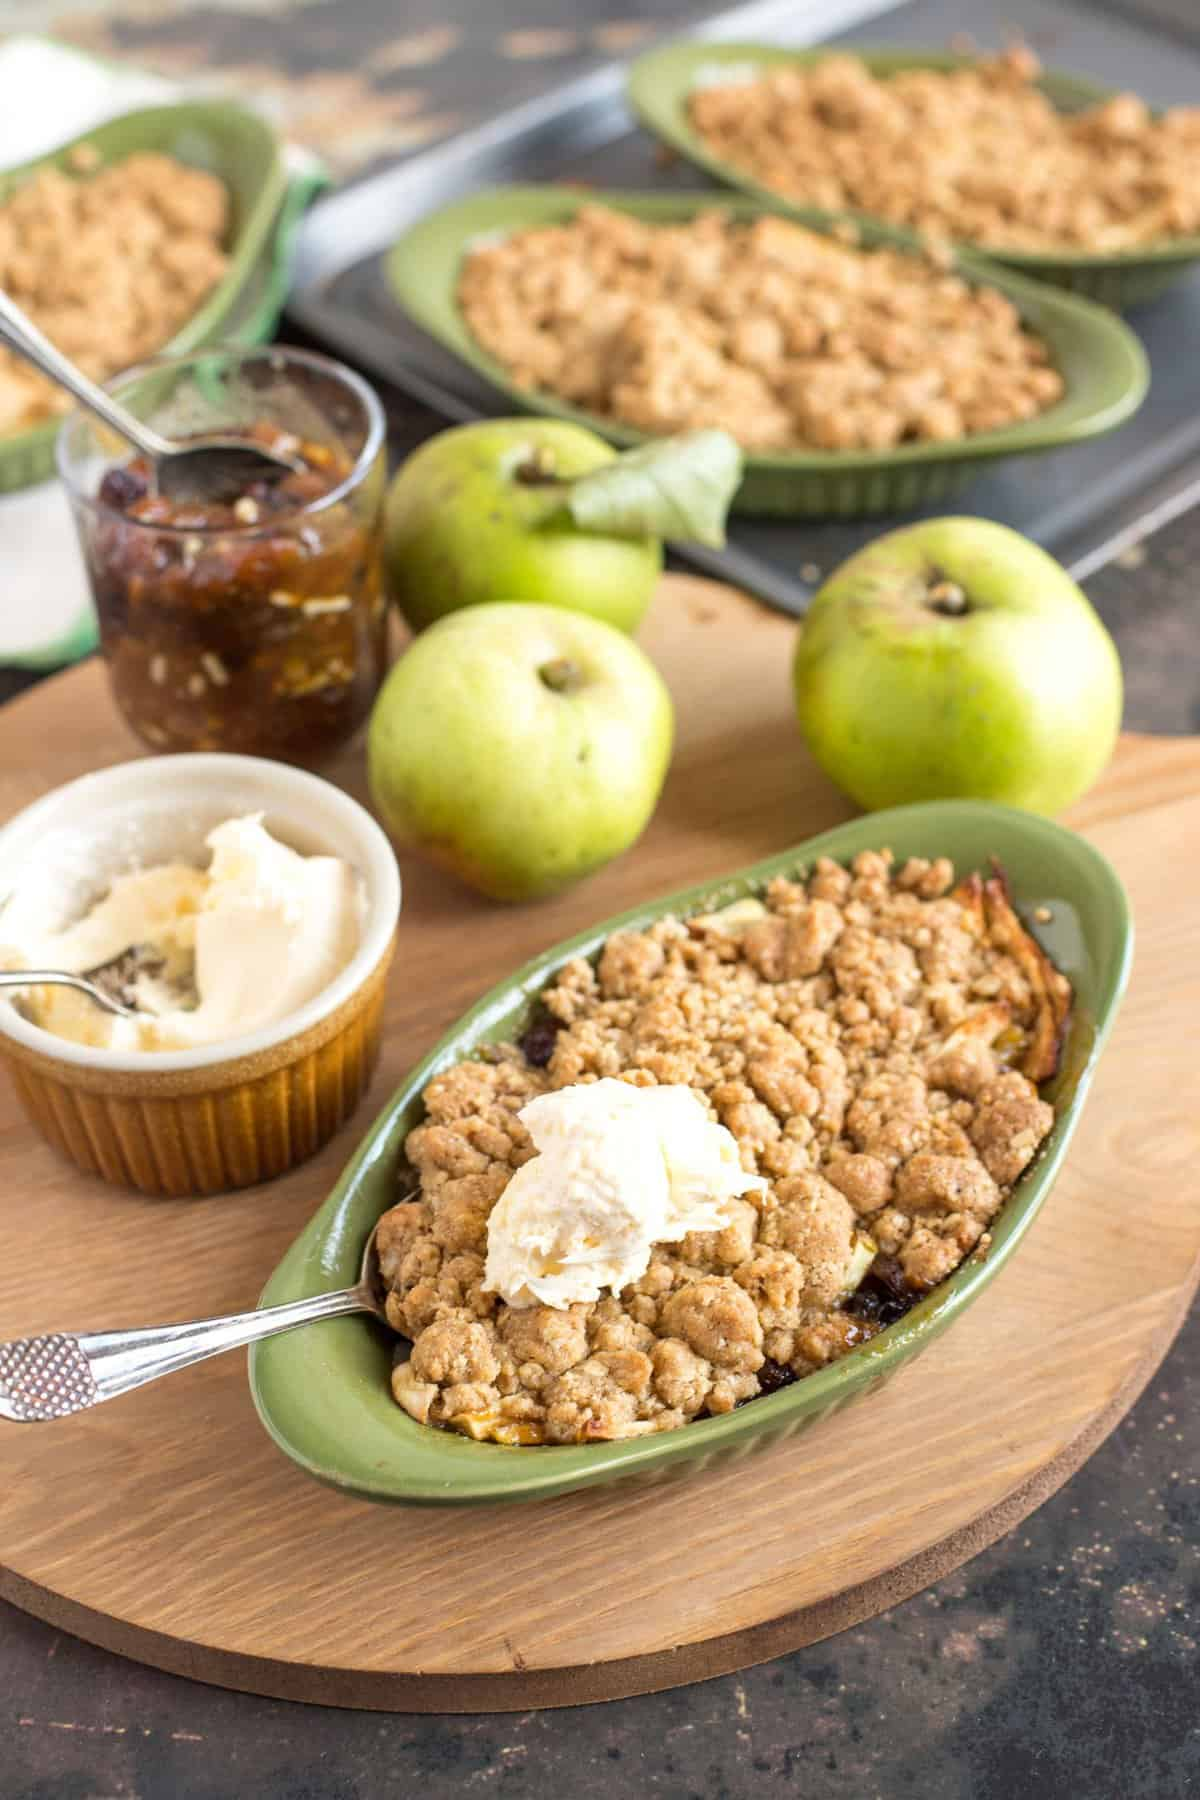 An individual serving of Apple and Mincemeat Crumble with clotted cream on top.